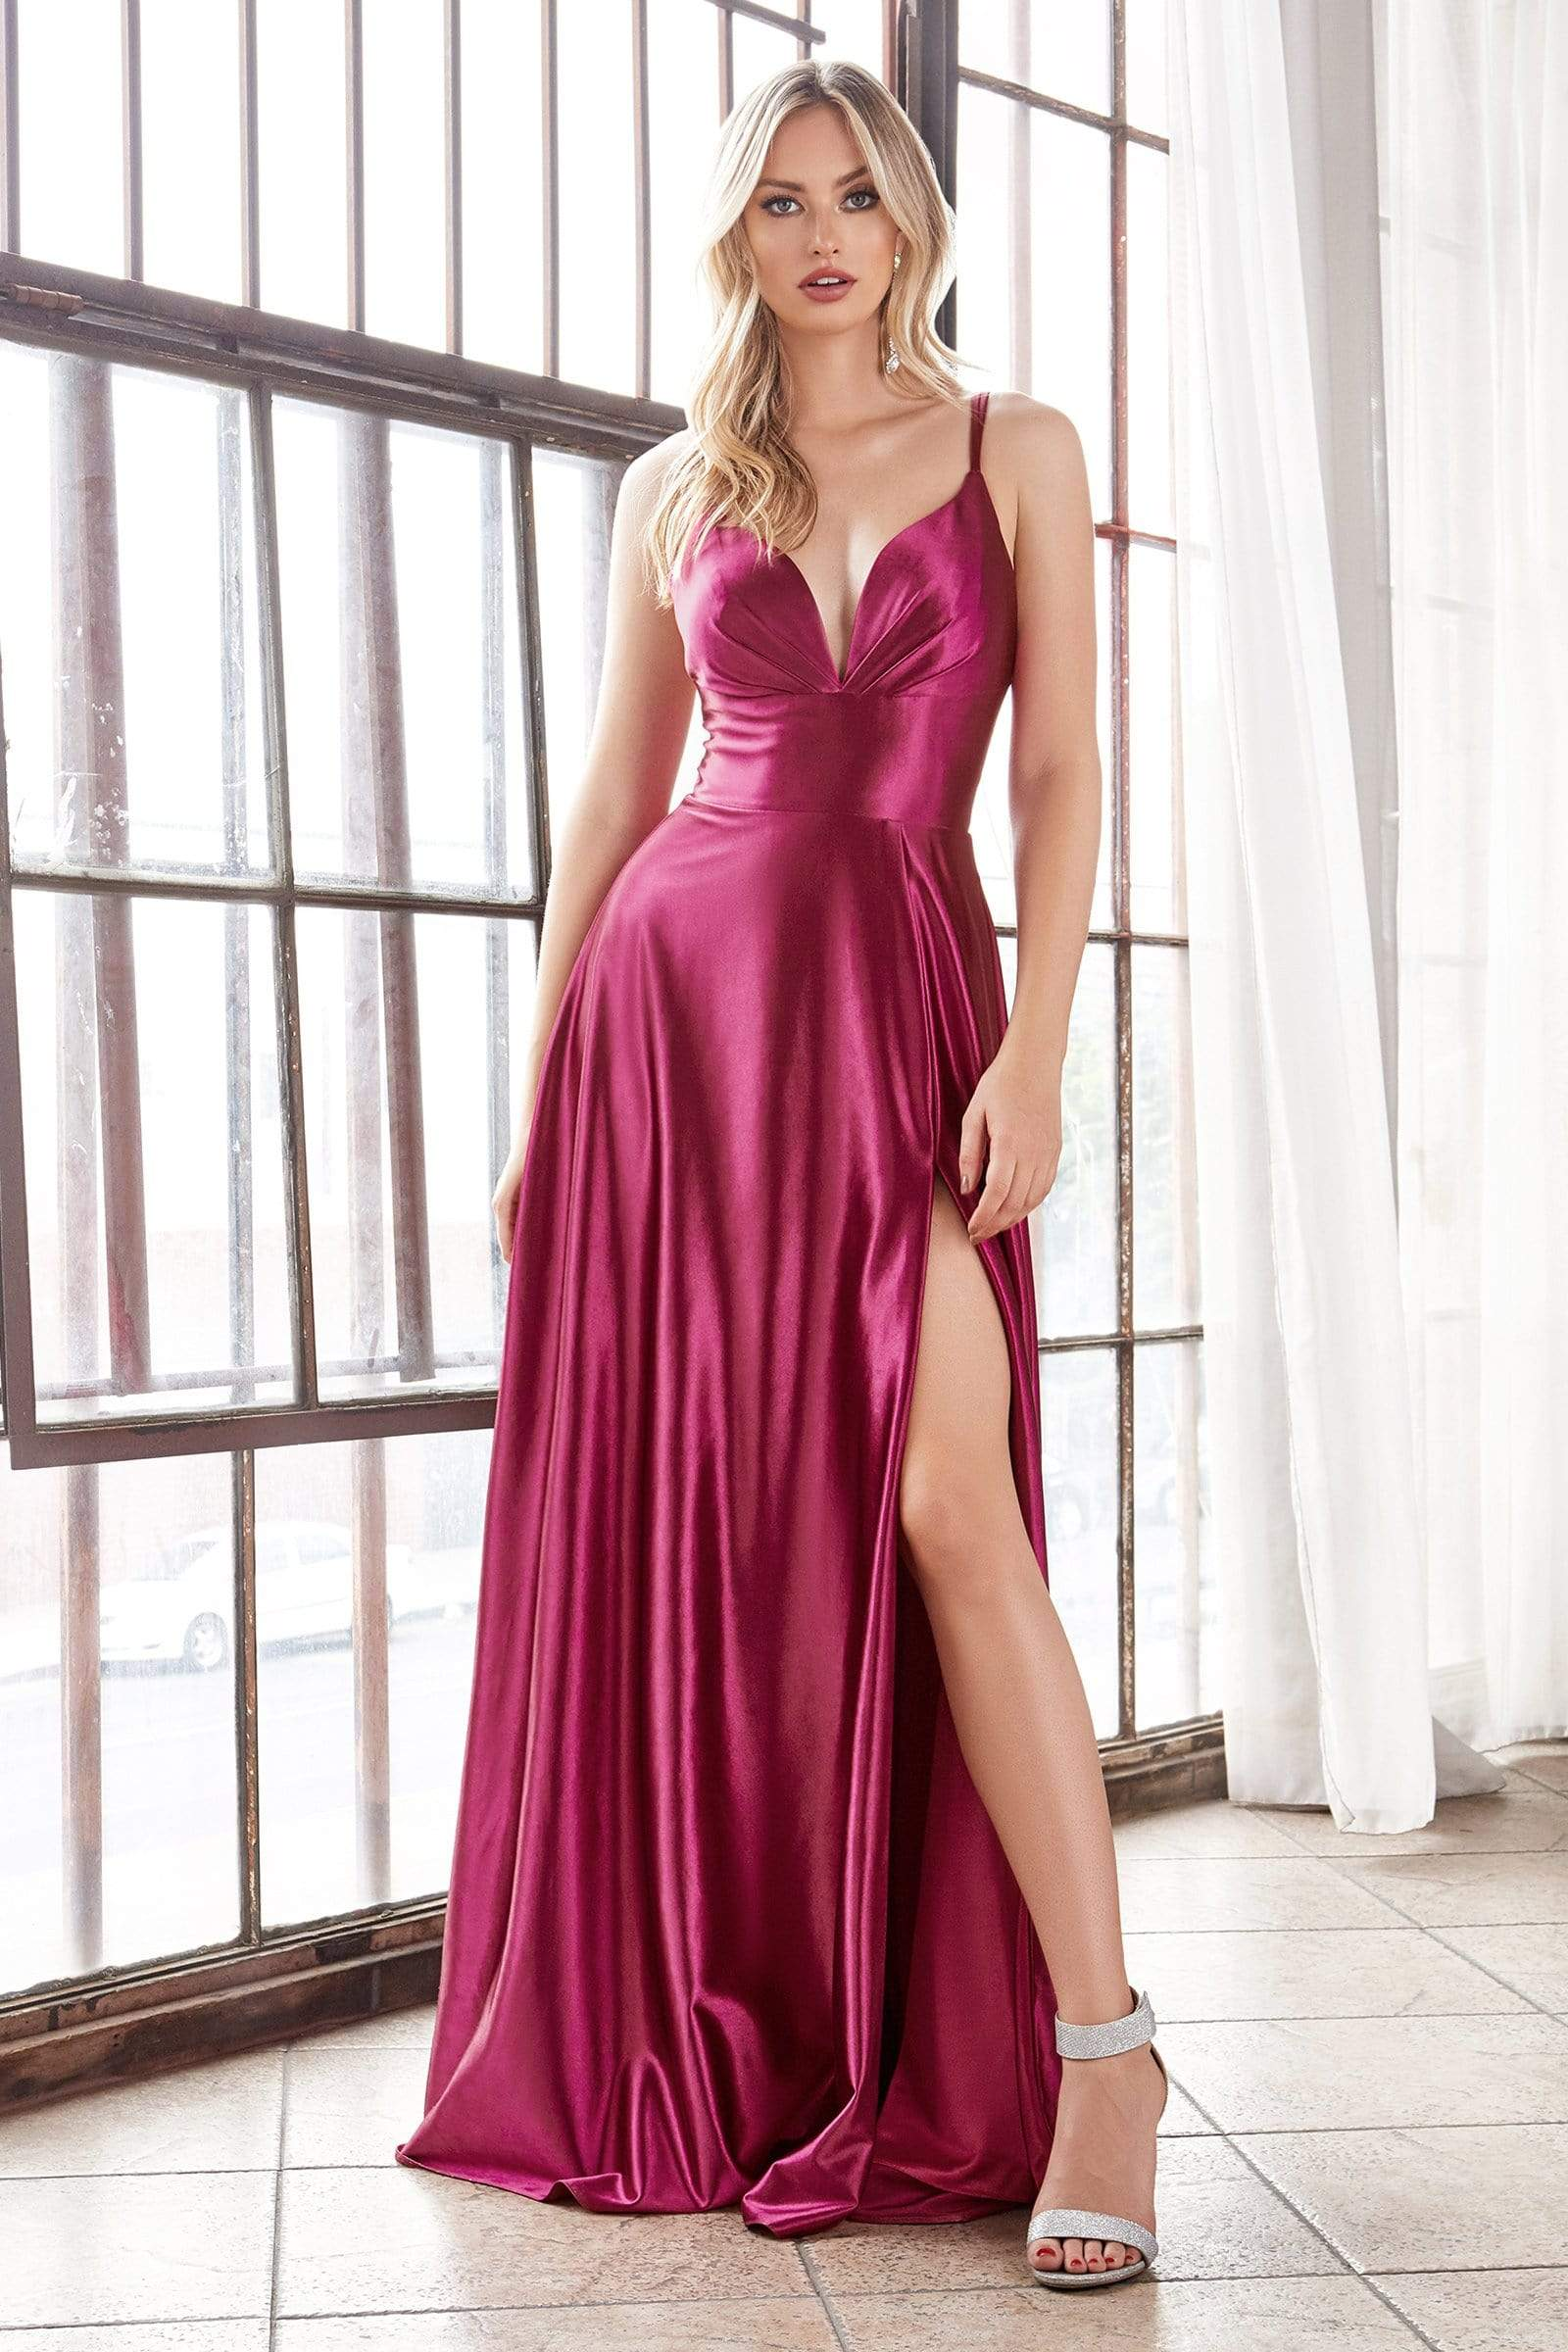 Cinderella Divine - CD903 Deep V-neck Satin A-line Gown In Red